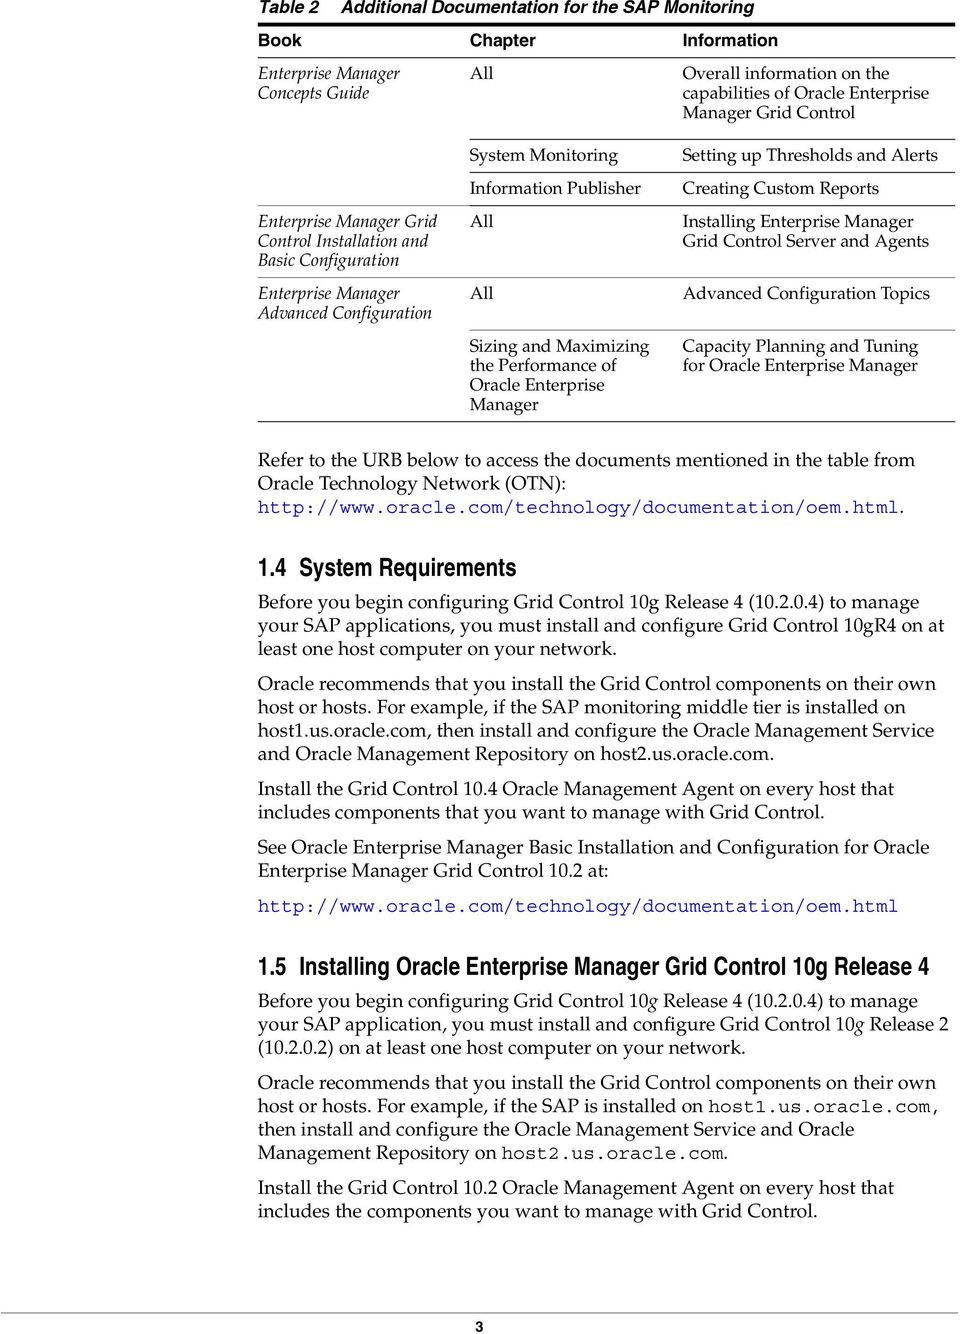 Performance of Oracle Enterprise Manager Setting up Thresholds and Alerts Creating Custom Reports Installing Enterprise Manager Grid Control Server and Agents Advanced Configuration Topics Capacity